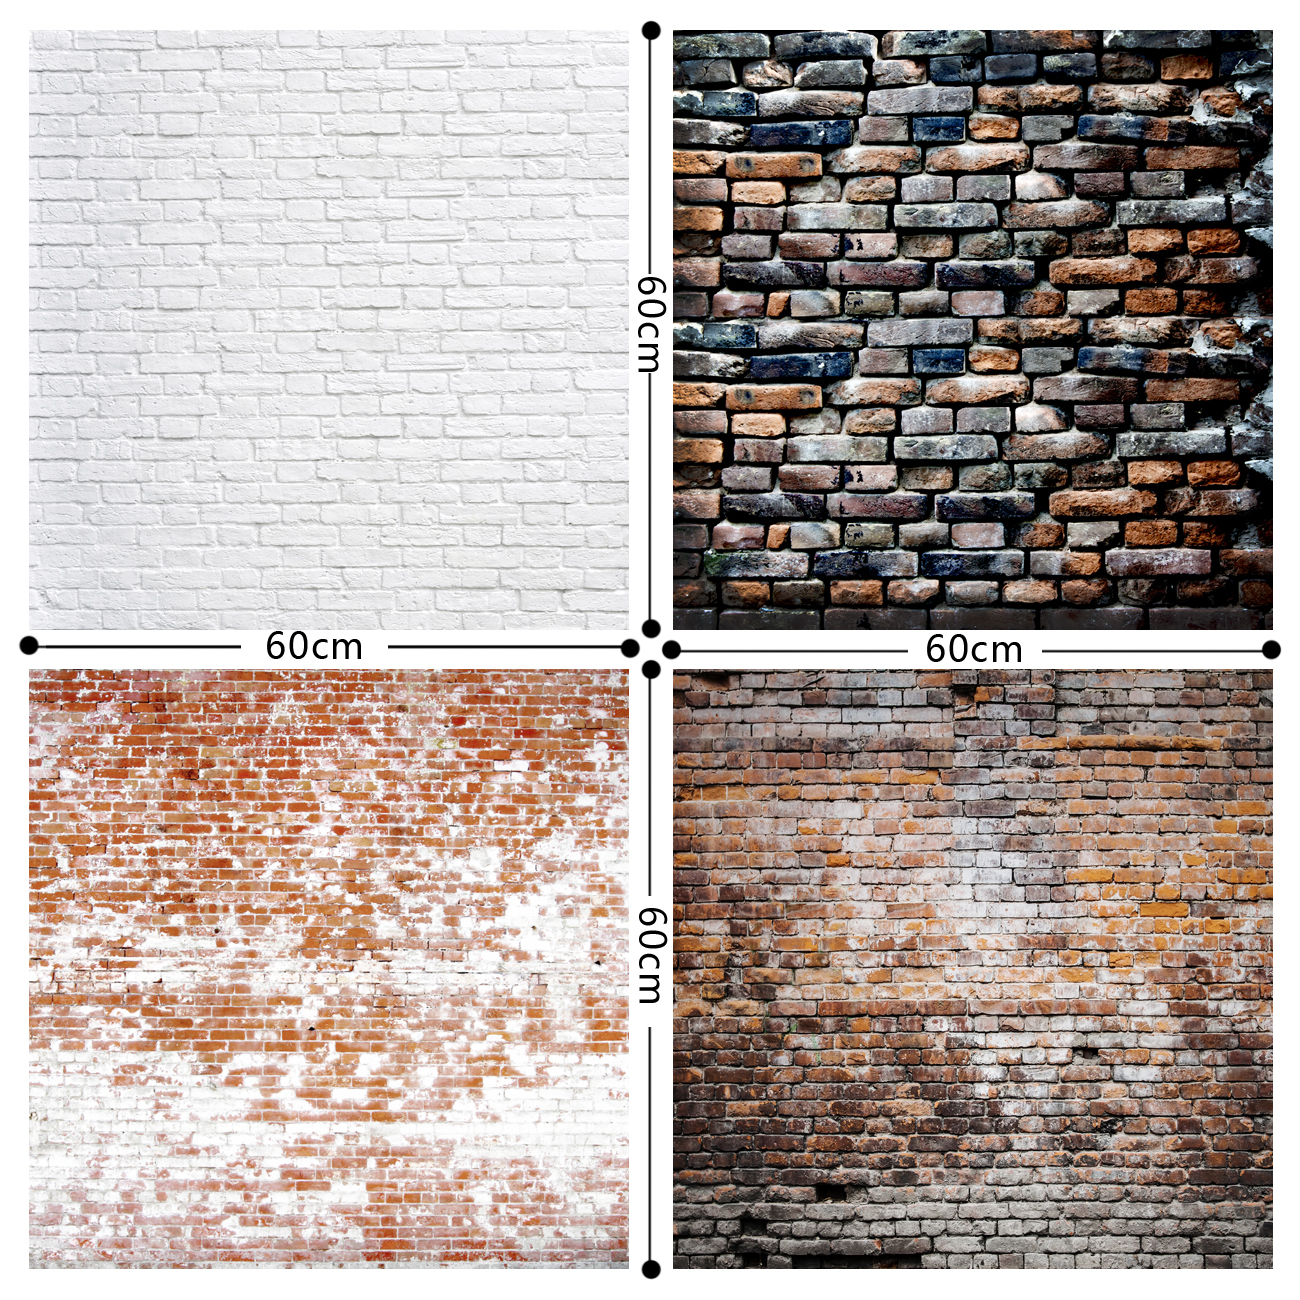 HUAYI 4pc 2x2ft Small items shotting photography Backdrops Vinyl Backdrop Photo Props Background GY-019 huayi 4pc 2x2ft wood floor brick wall backdrop vinyl photography backdrops photo props background small object shooting gy 019